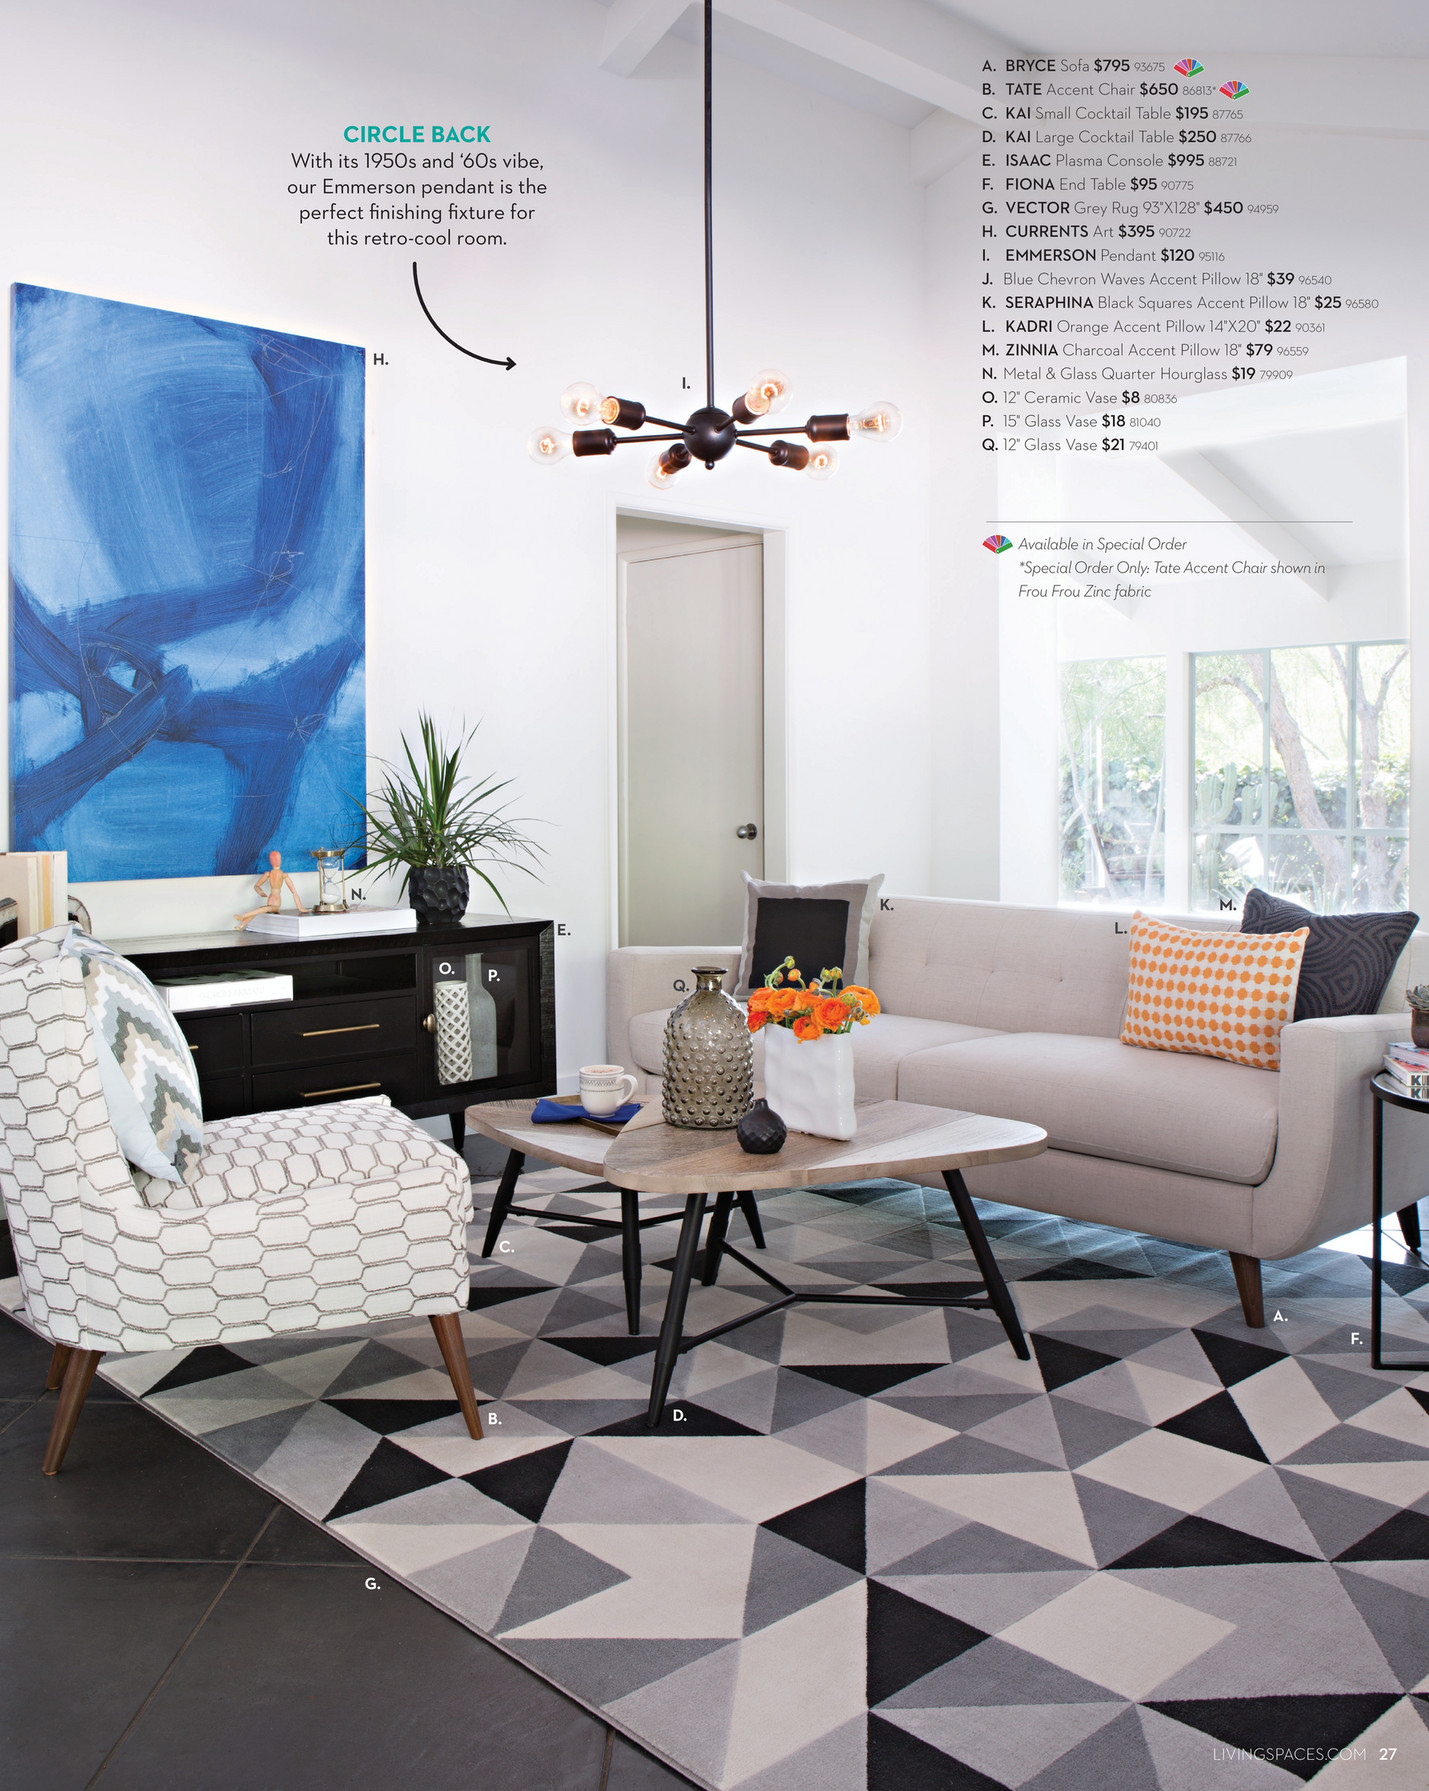 living spaces product catalog summer 2016 page 26 27 livingspaces com 27